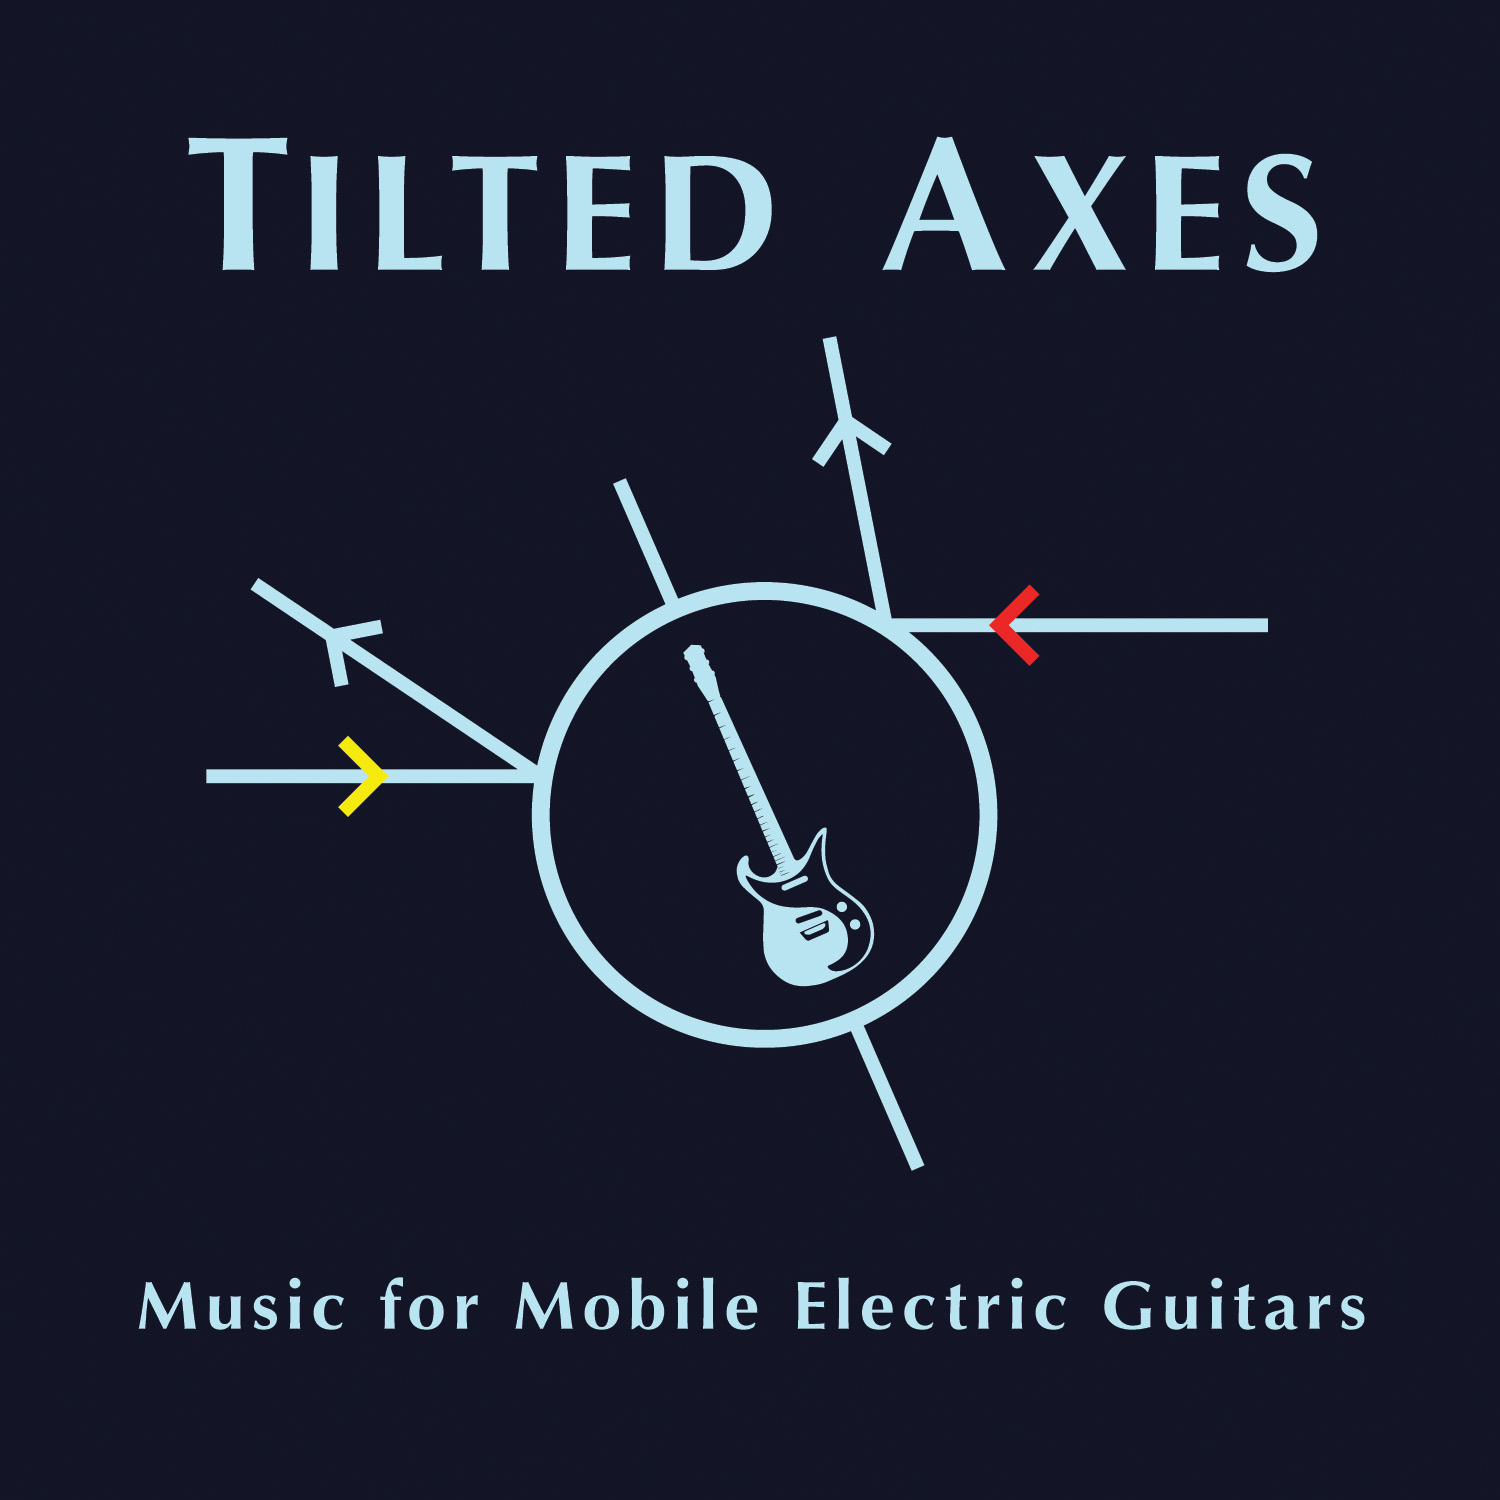 Music for Mobile Electric Guitars